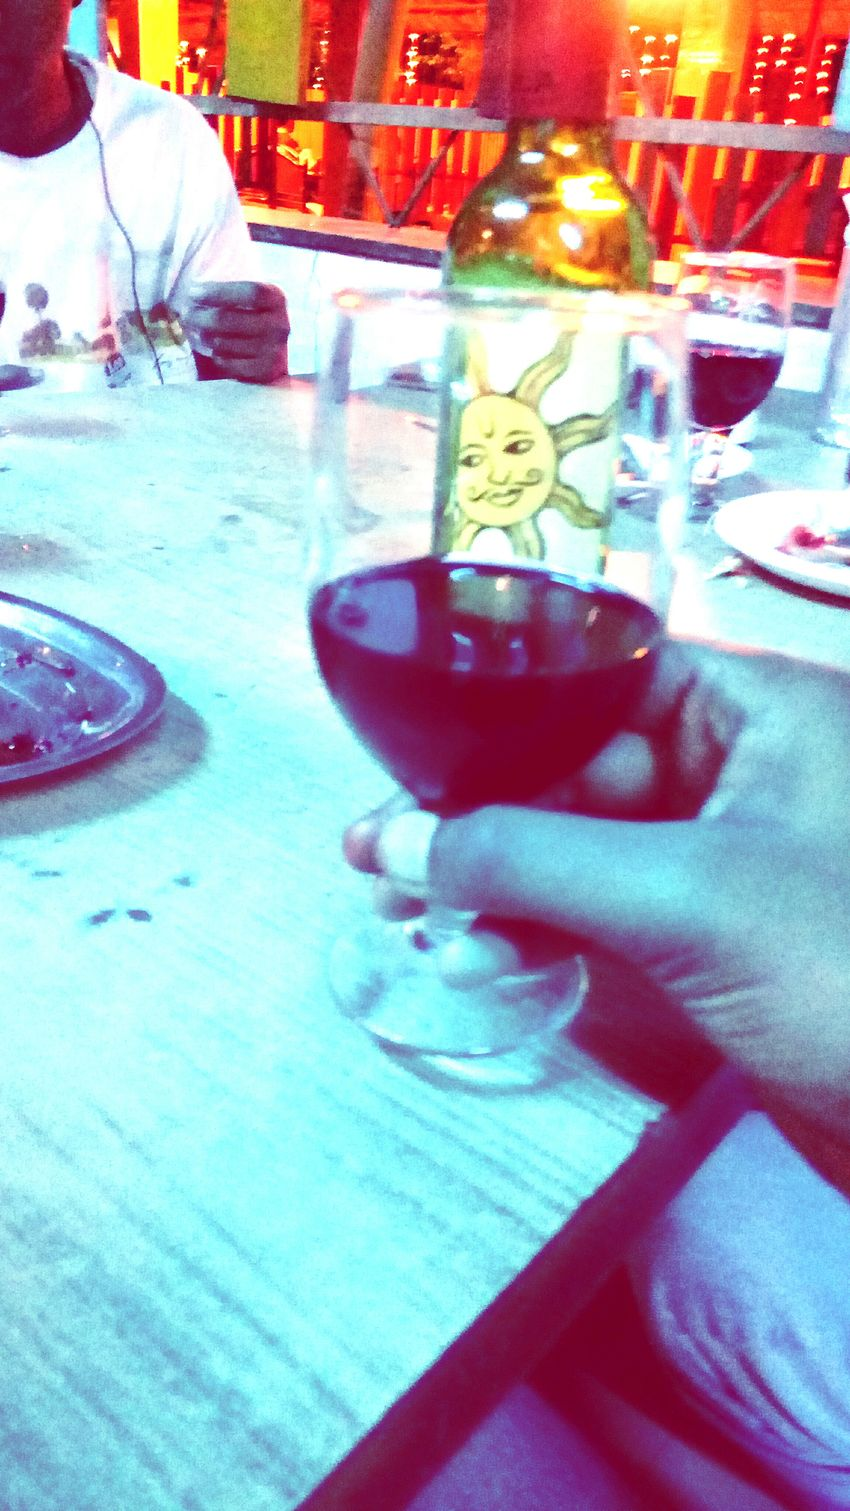 Cropped Hanging Out Some More Redwine Please😊🍷😄 Wineglass Enjoying Life Dinnertime Winetasting Redwine Part Of Hand Bestwine Followback Relaxing Refreshingdrink